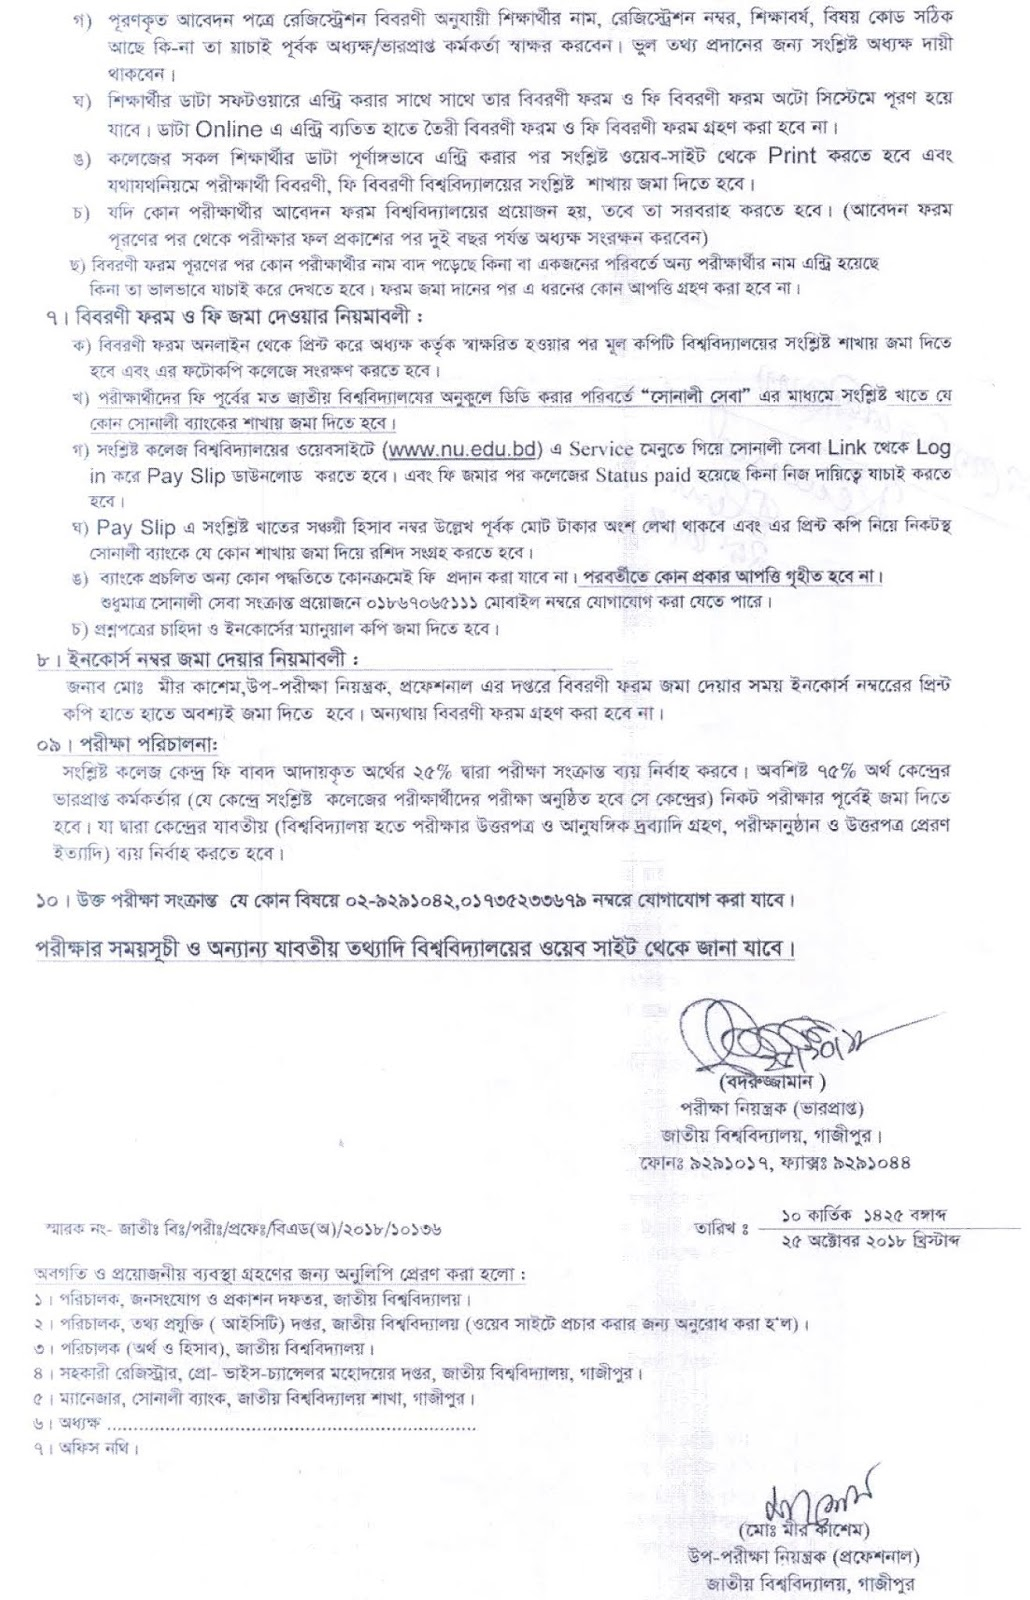 National University B.ED Hons 4th year 7th Semester Form Fill Up Notice circular 2018